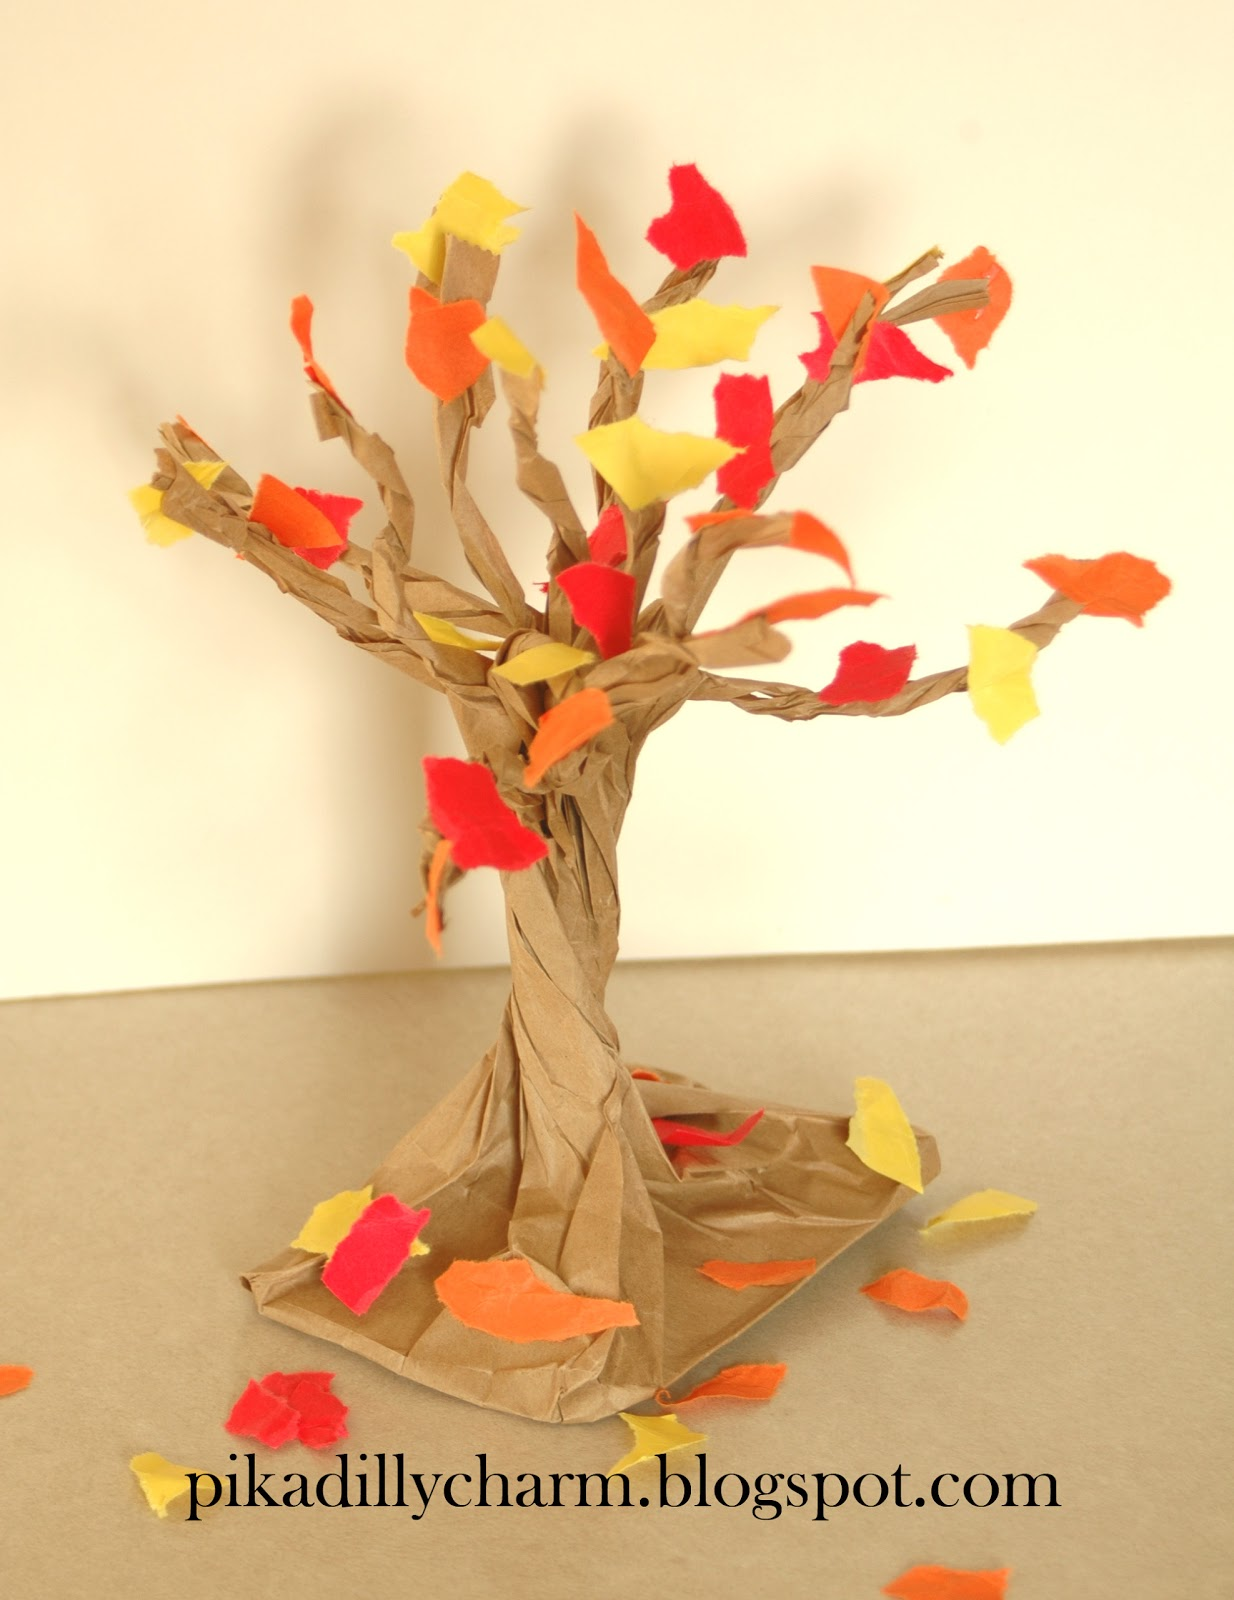 Paper Crafts For Kids: Pikadilly Charm: Paper Bag Fall Tree